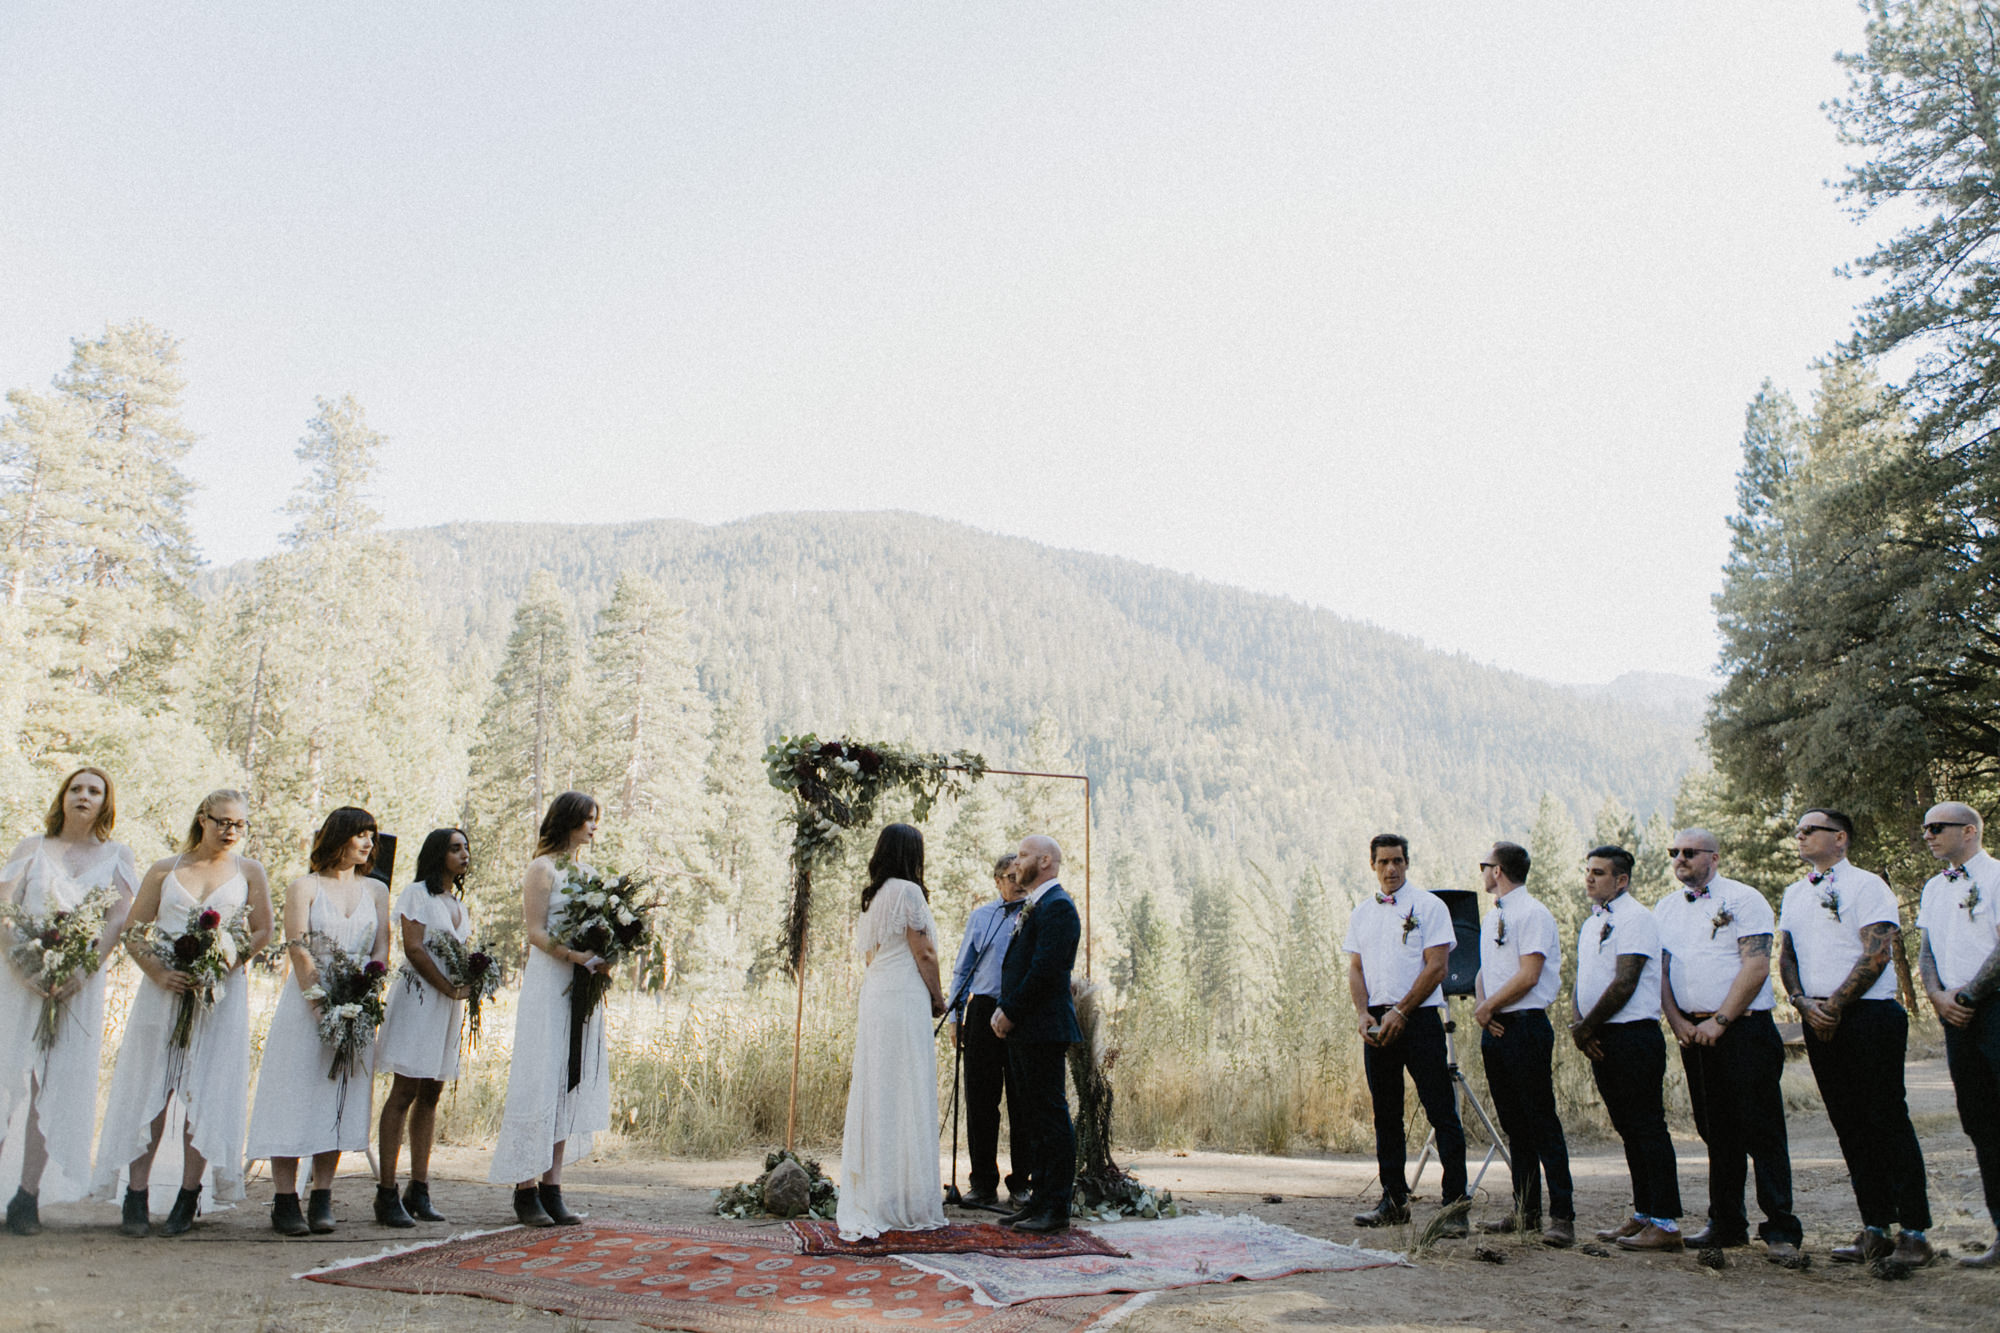 YMCA camp round meadow wedding -77.jpg